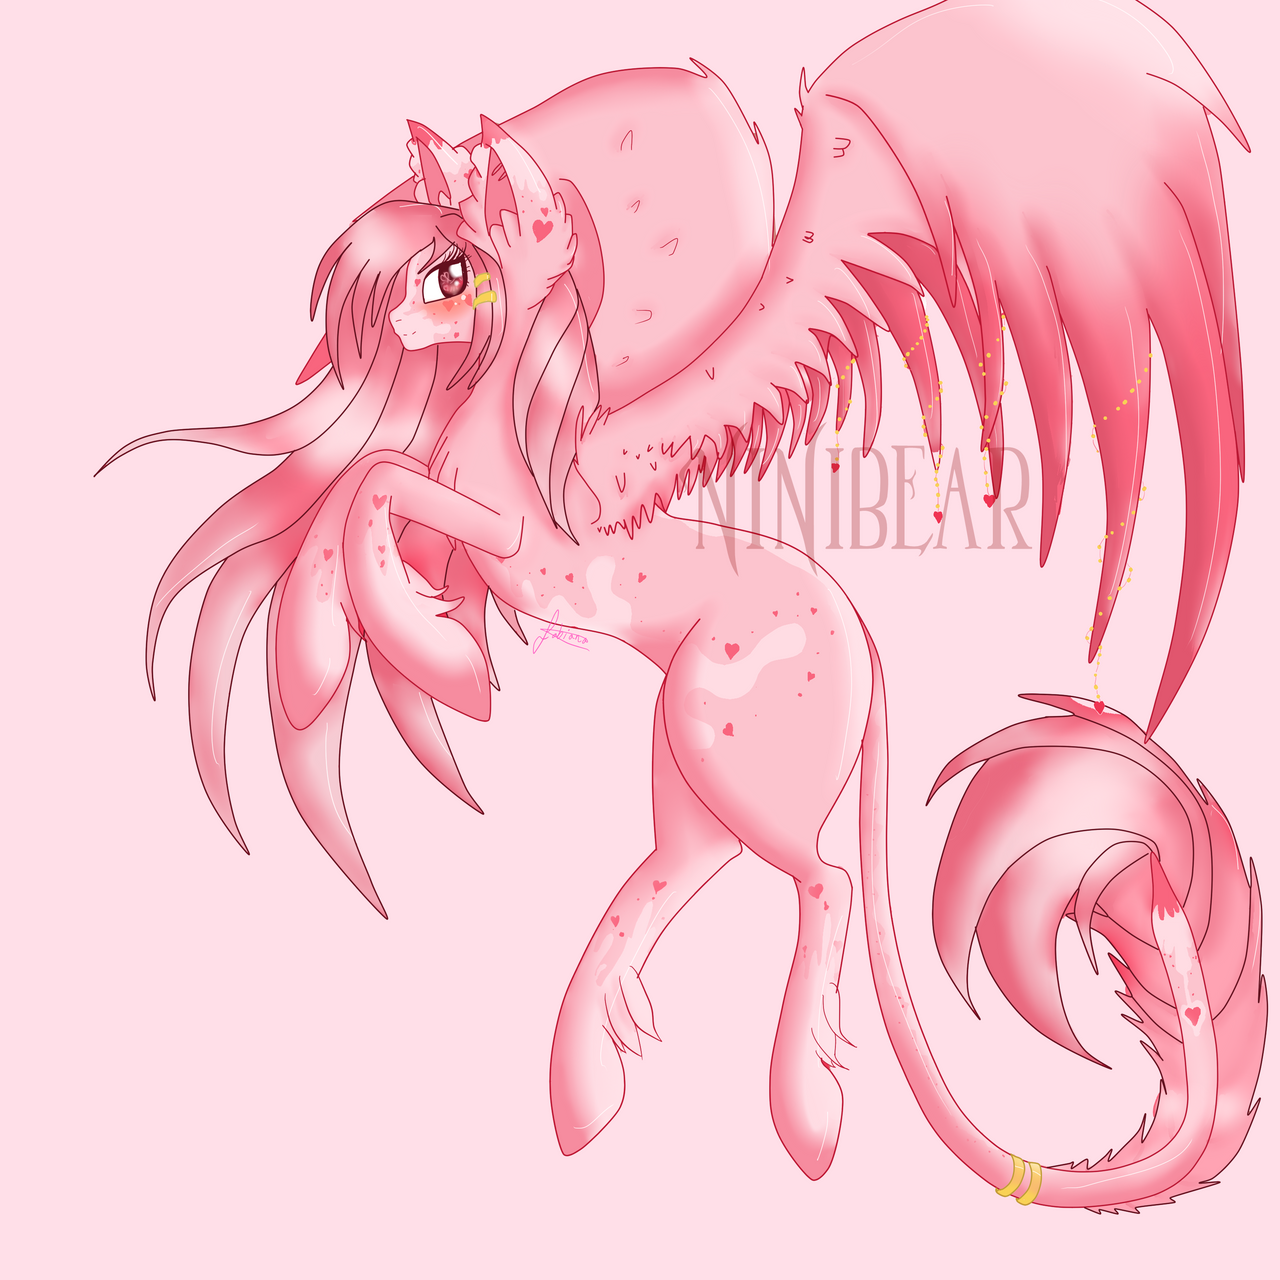 valentines_day_2_adoptable__open__by_fabicakes13-d9rgurm.png